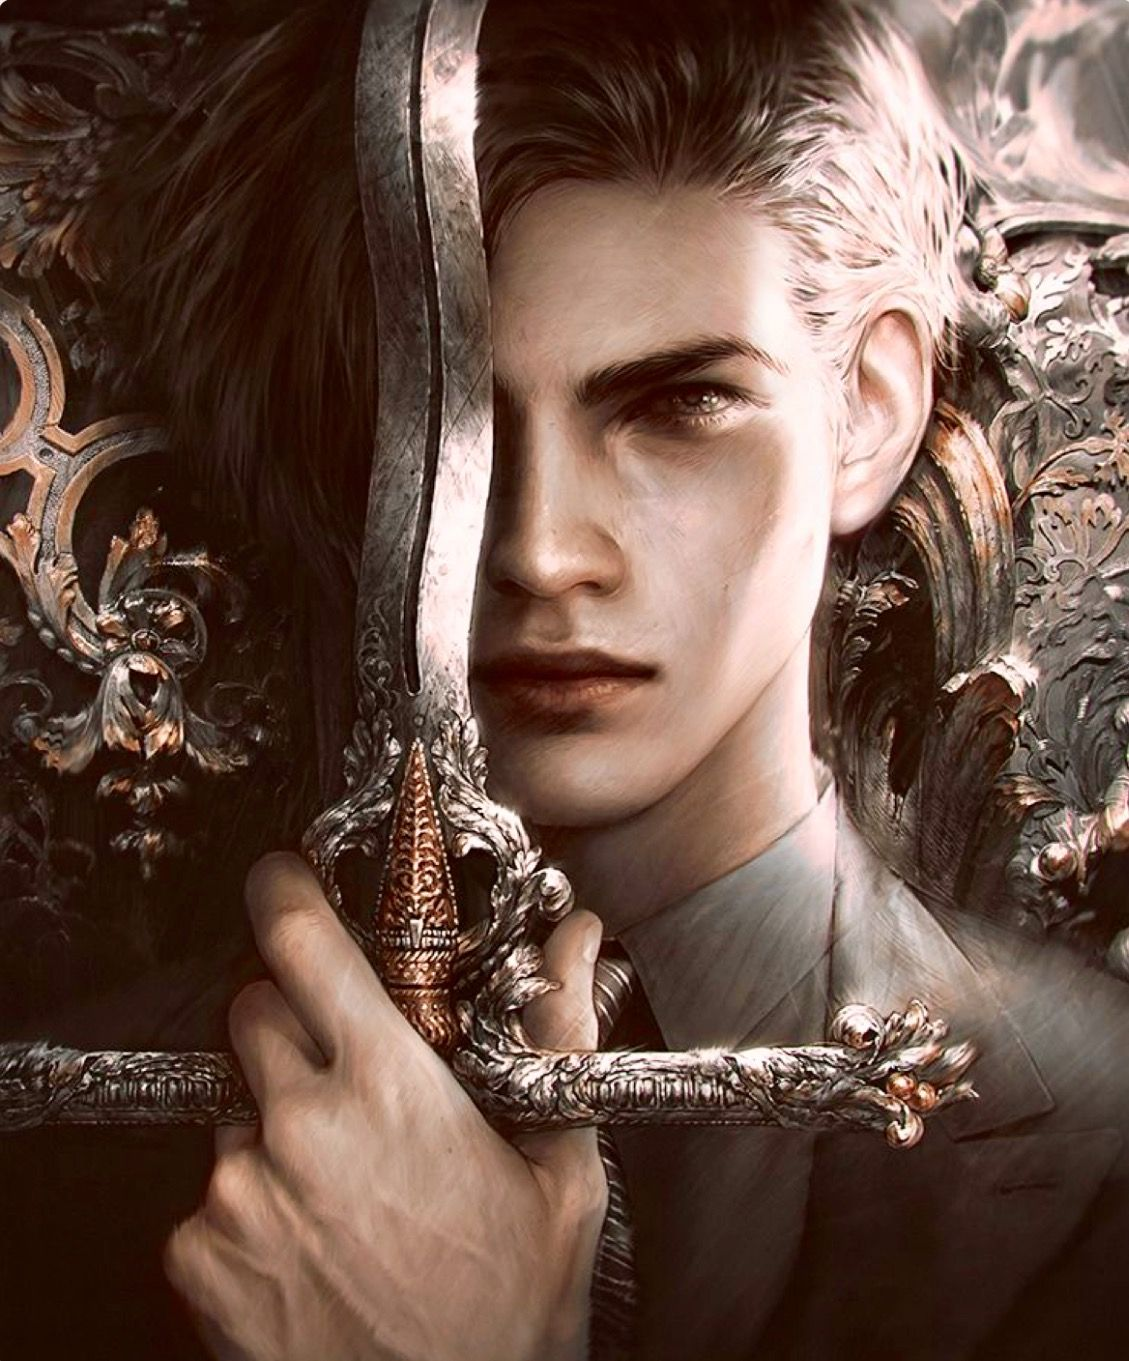 Jonathan Christopher Morgenstern